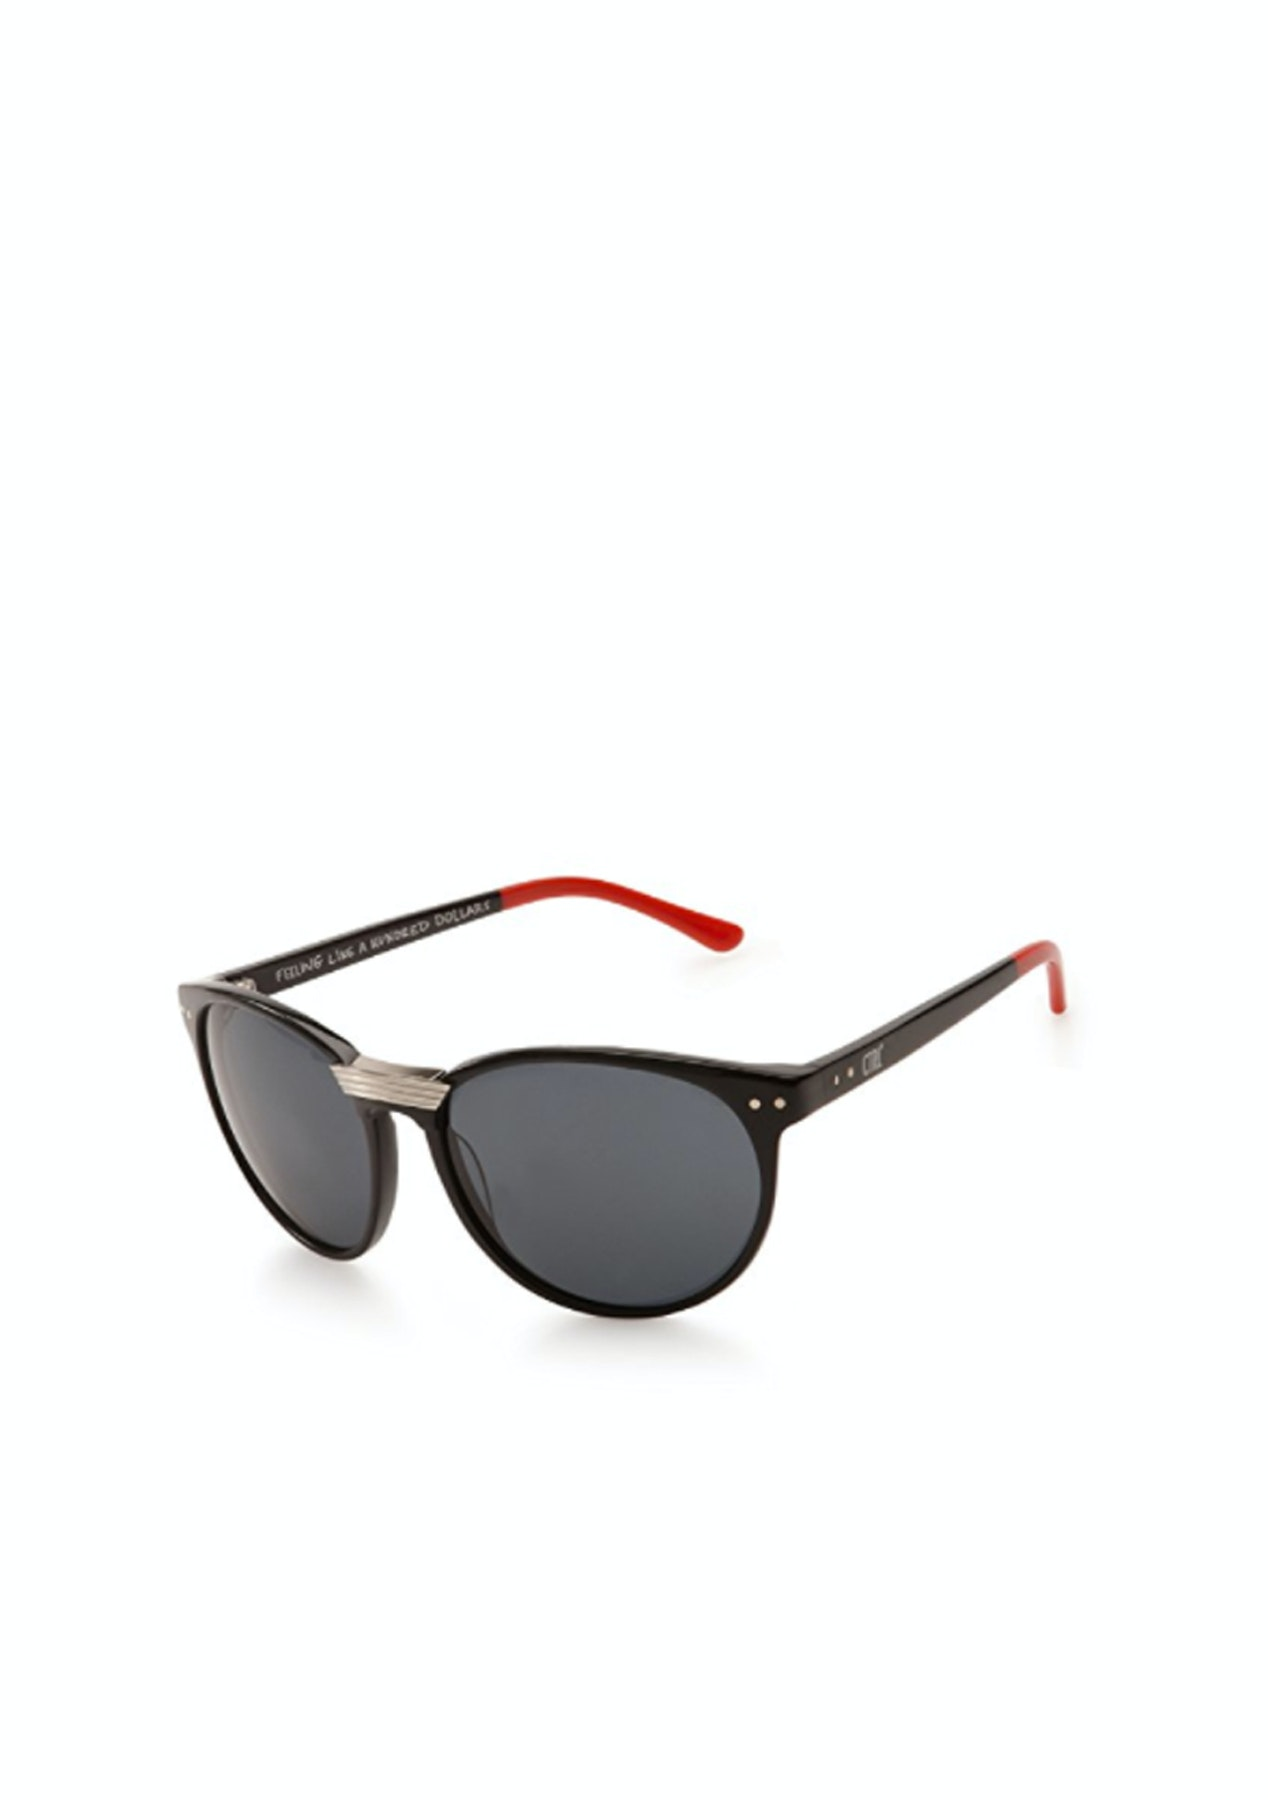 6127d36e10a Sabre Eyewear - Ctrl - Black Red Grey - The Big Sunglasses Sale - Onceit